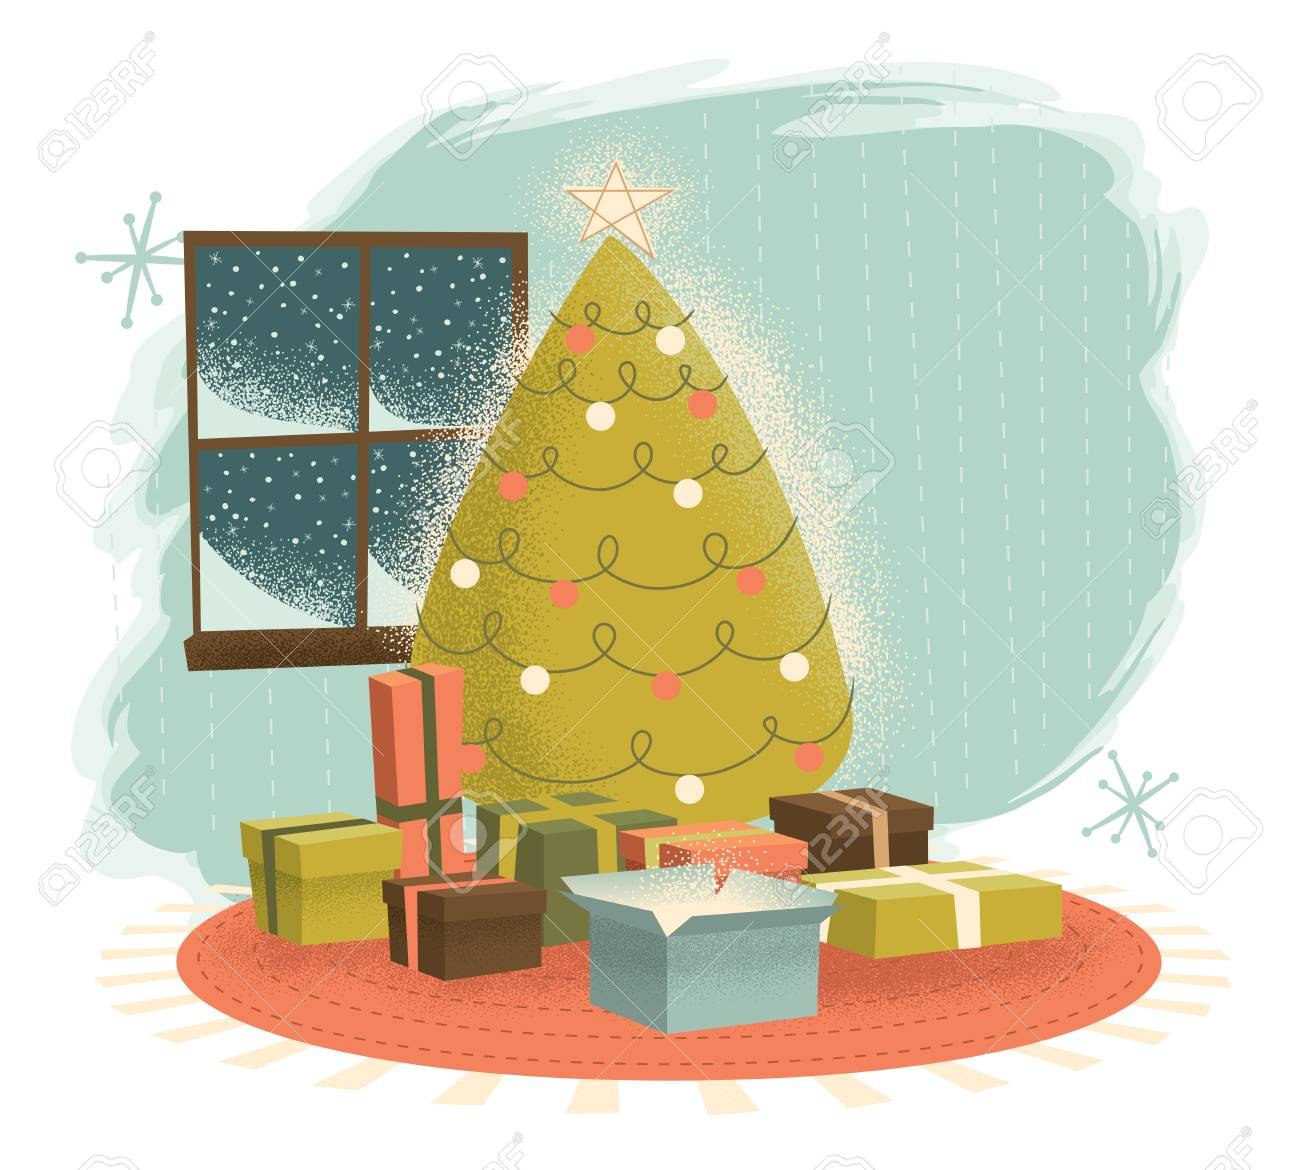 Vintage Christmas Tree With Presents Illustrated In A Retro Modern Royalty Free Cliparts Vectors And Stock Illustration Image 127395562